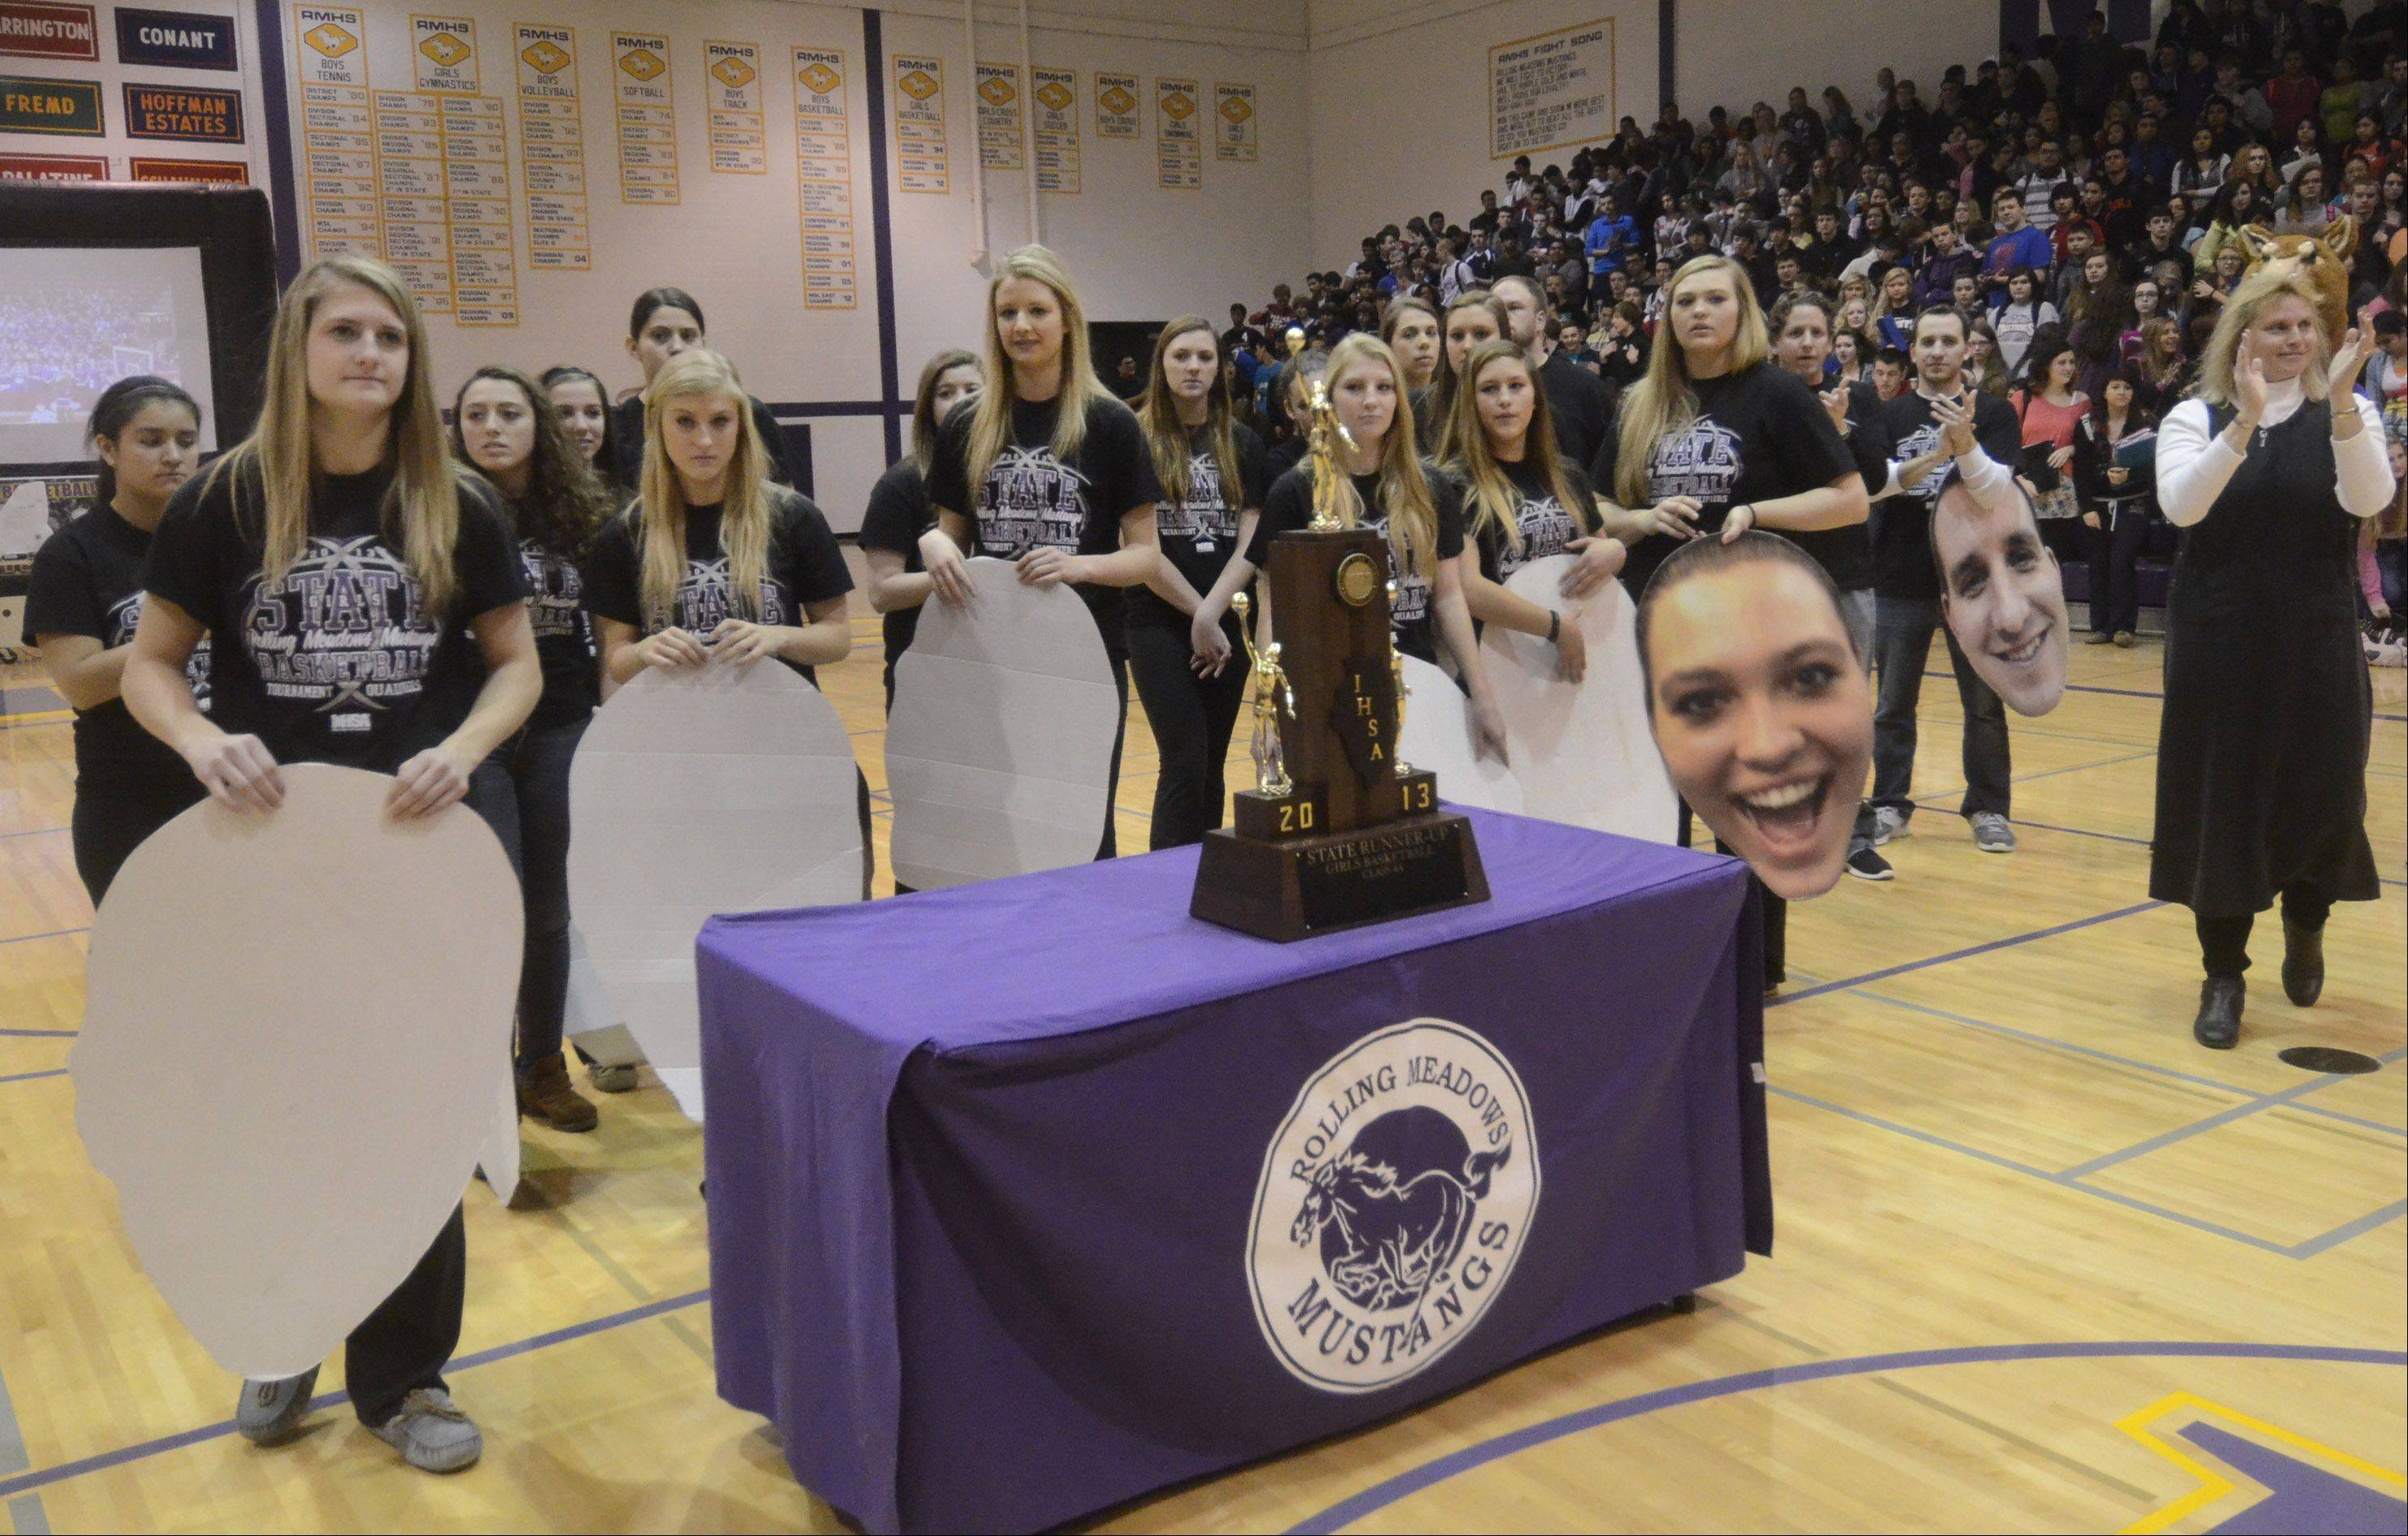 Rolling Meadows High School celebrated its state runner-up girls basketball team Monday morning. The team is returning nearly all of its players next year, giving hope for another run for the state title.